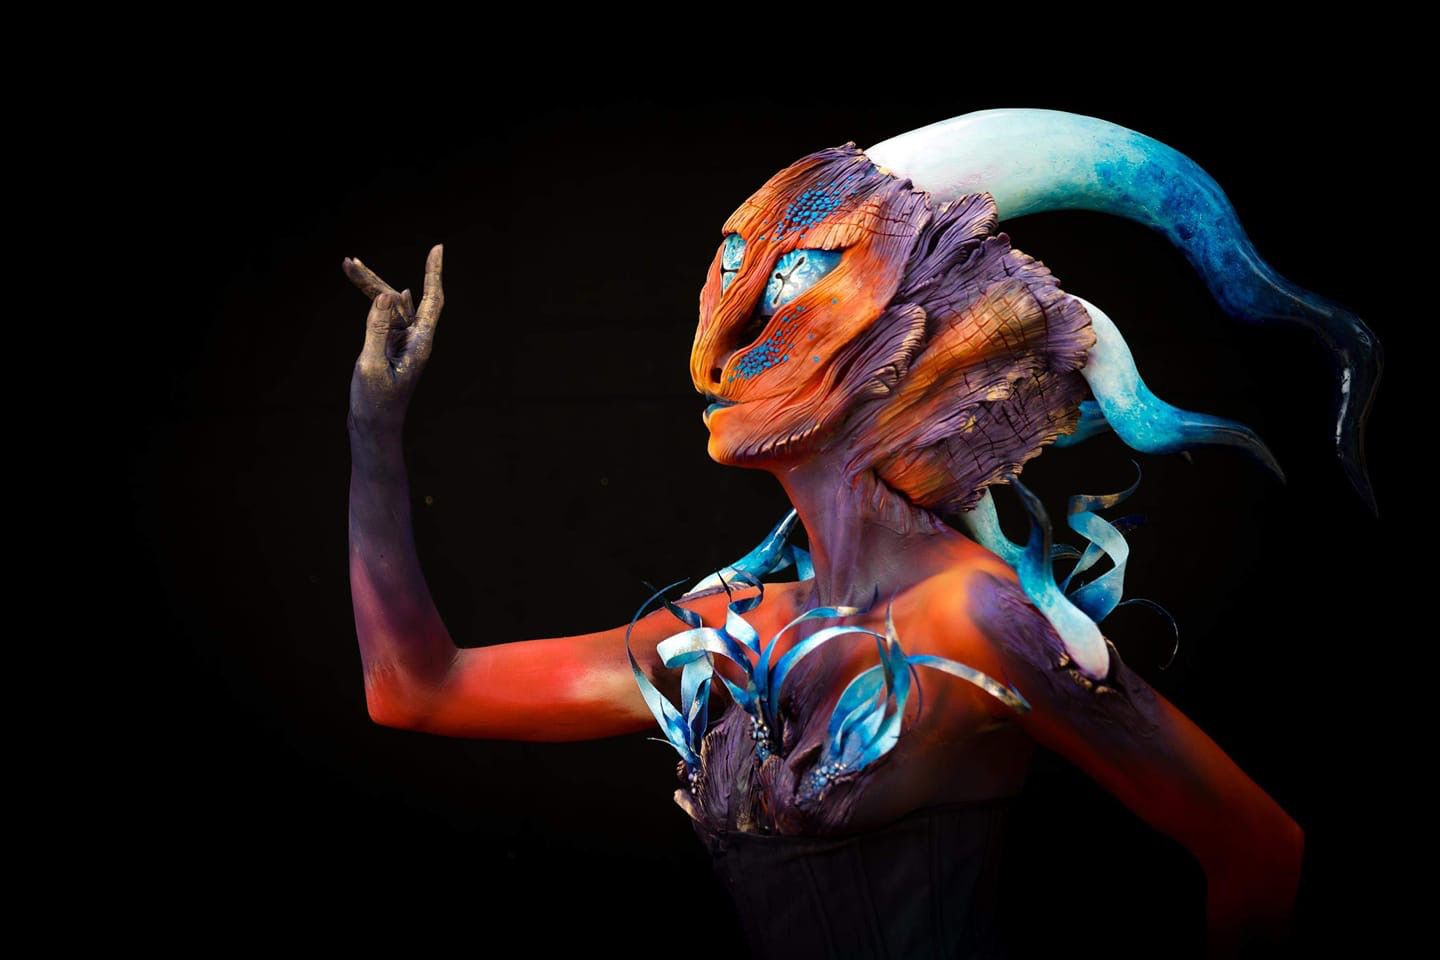 Special Effects Makeup Awards 2019 Bodypainting Festival Bodypainting Festival